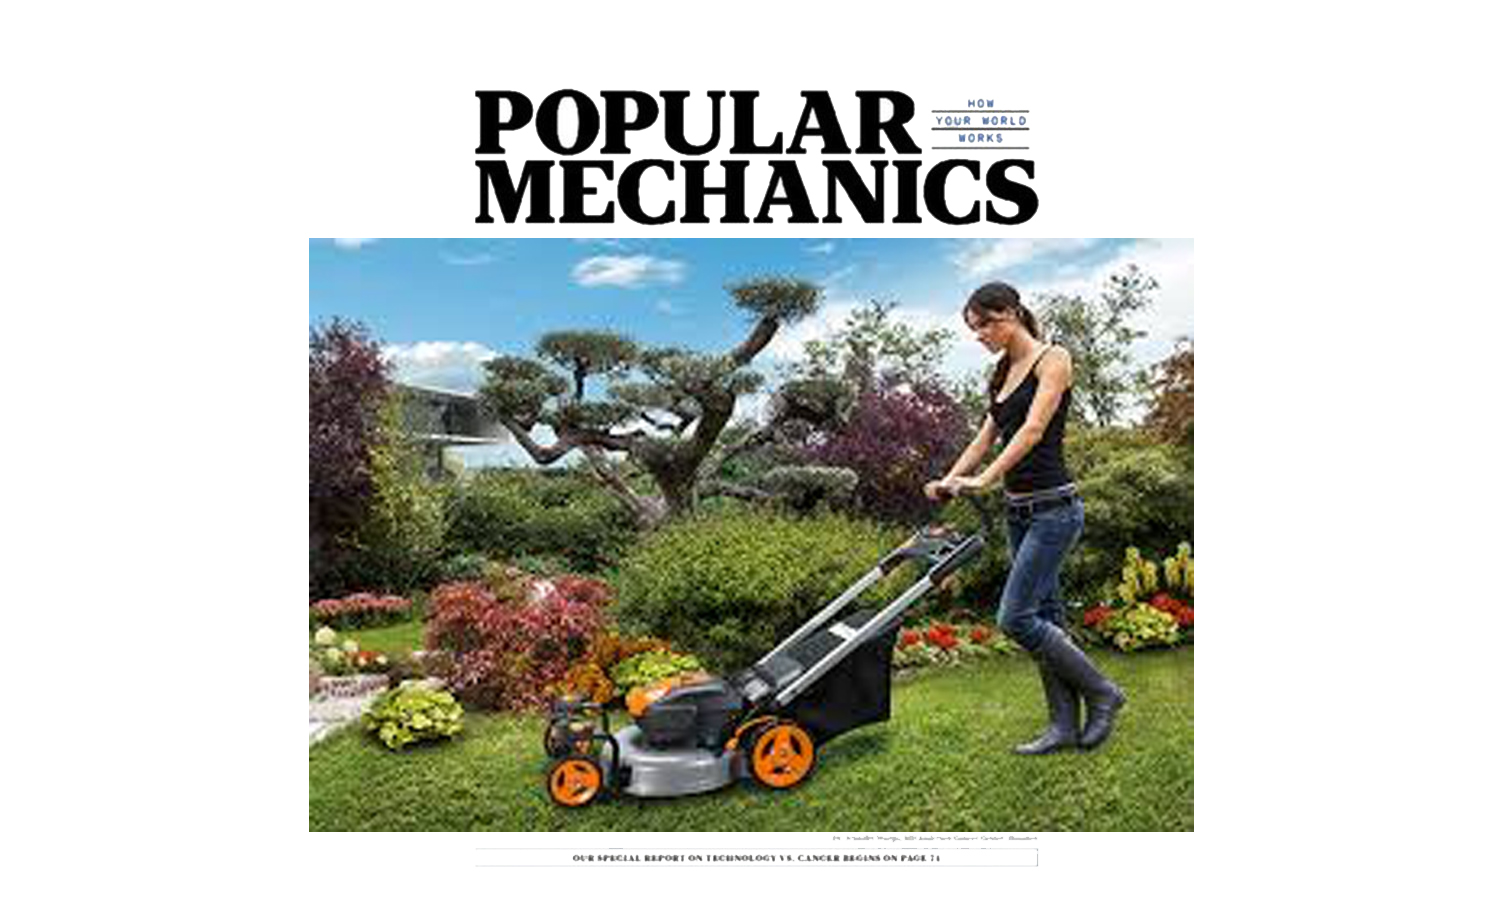 WORX Lawn mower in Popular Mechanics Magazine